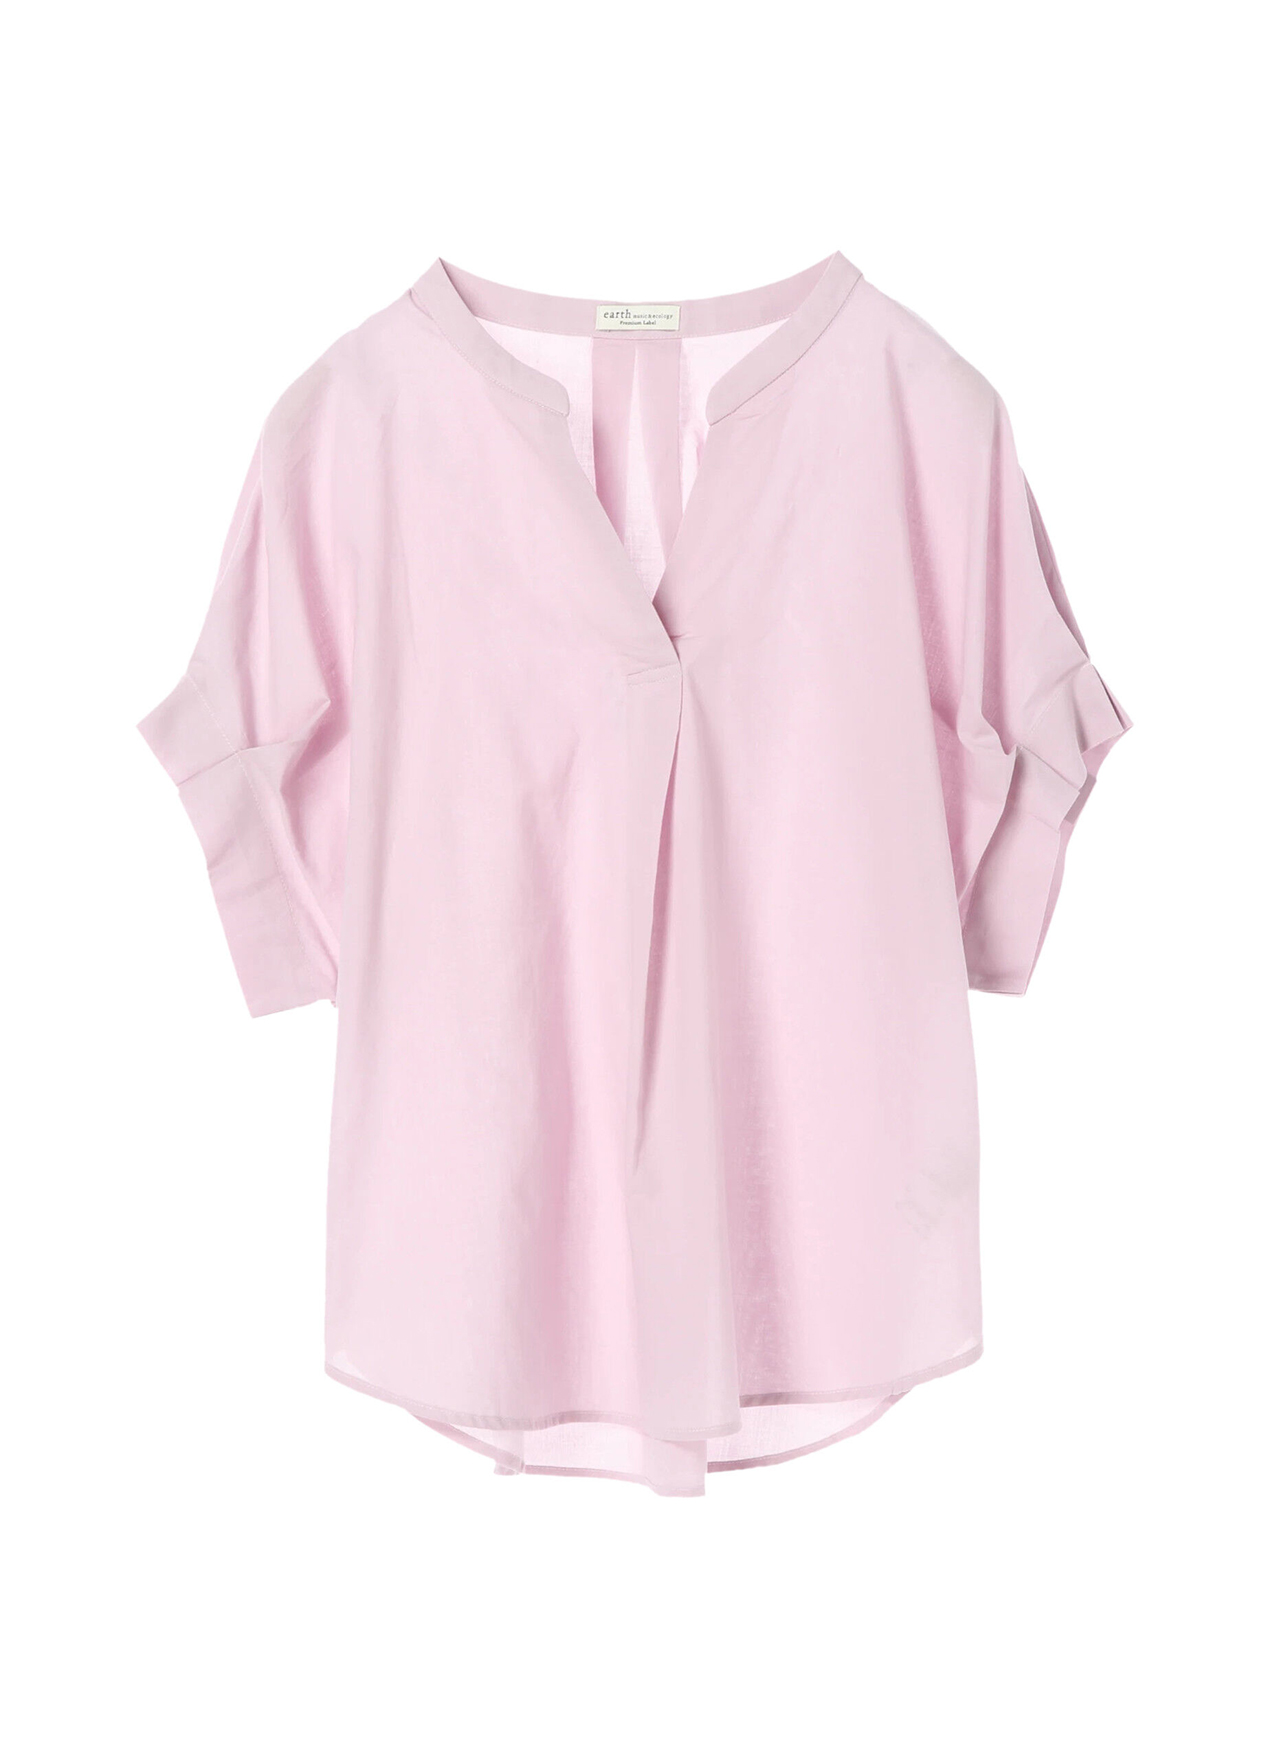 Earth, Music & Ecology Yurina Top - Pink